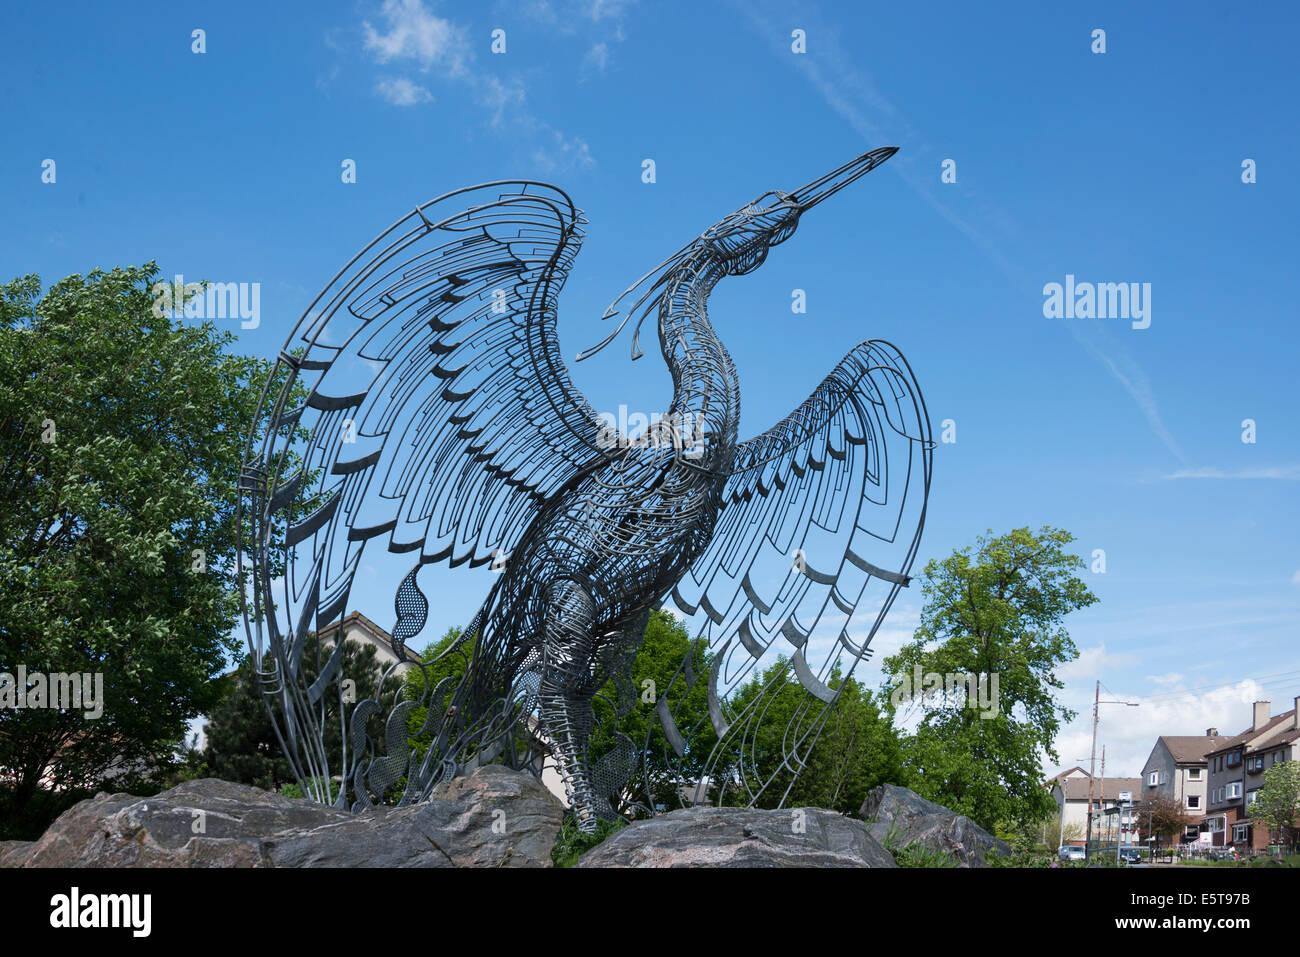 Easterhouse Phoenix in East End of Glasgow  - a sculpture by Andy Scott. - Stock Image